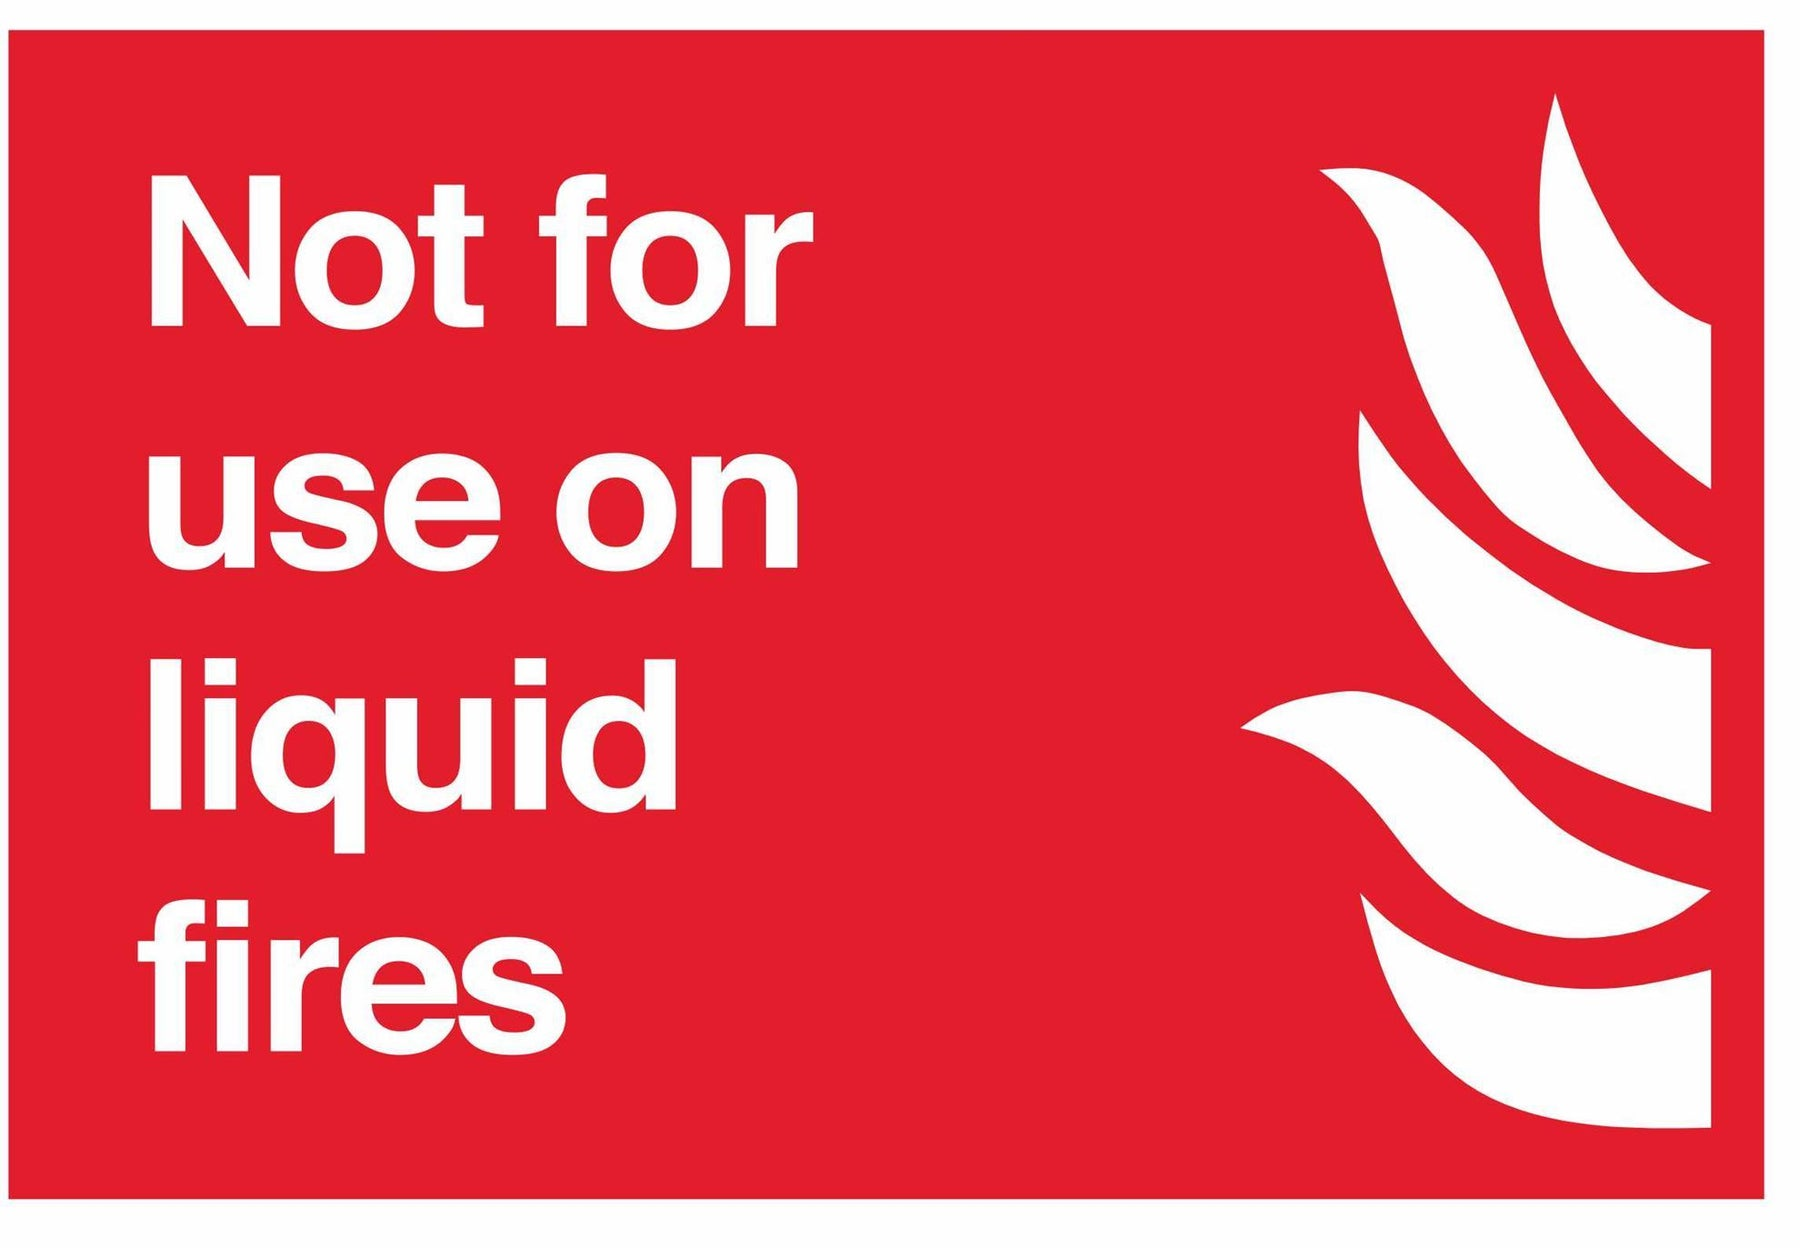 Not for use on liquid fires